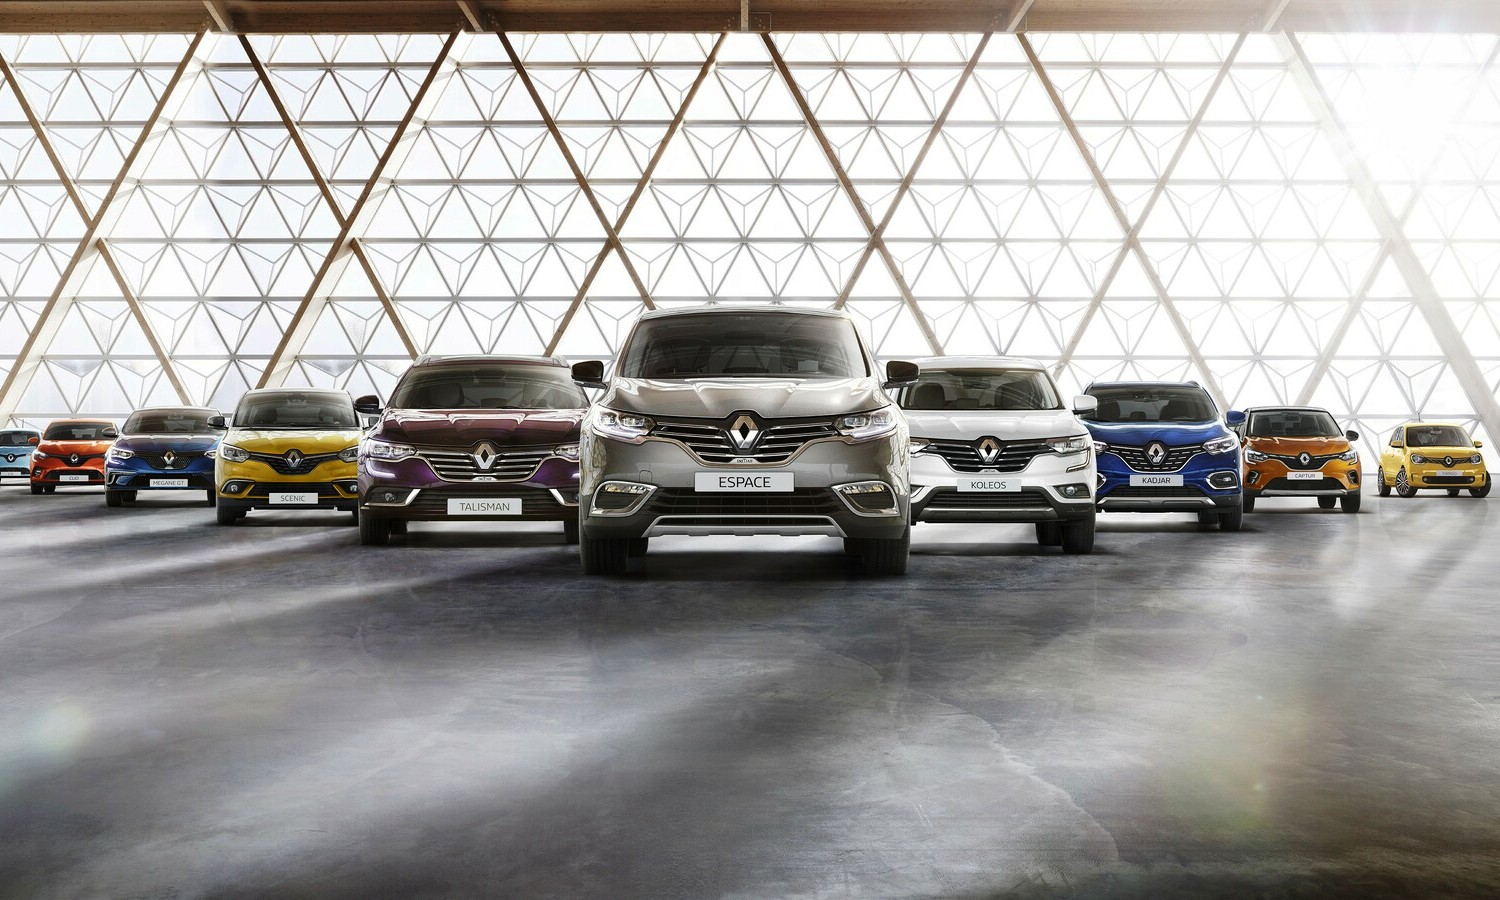 All models Groupe Renault